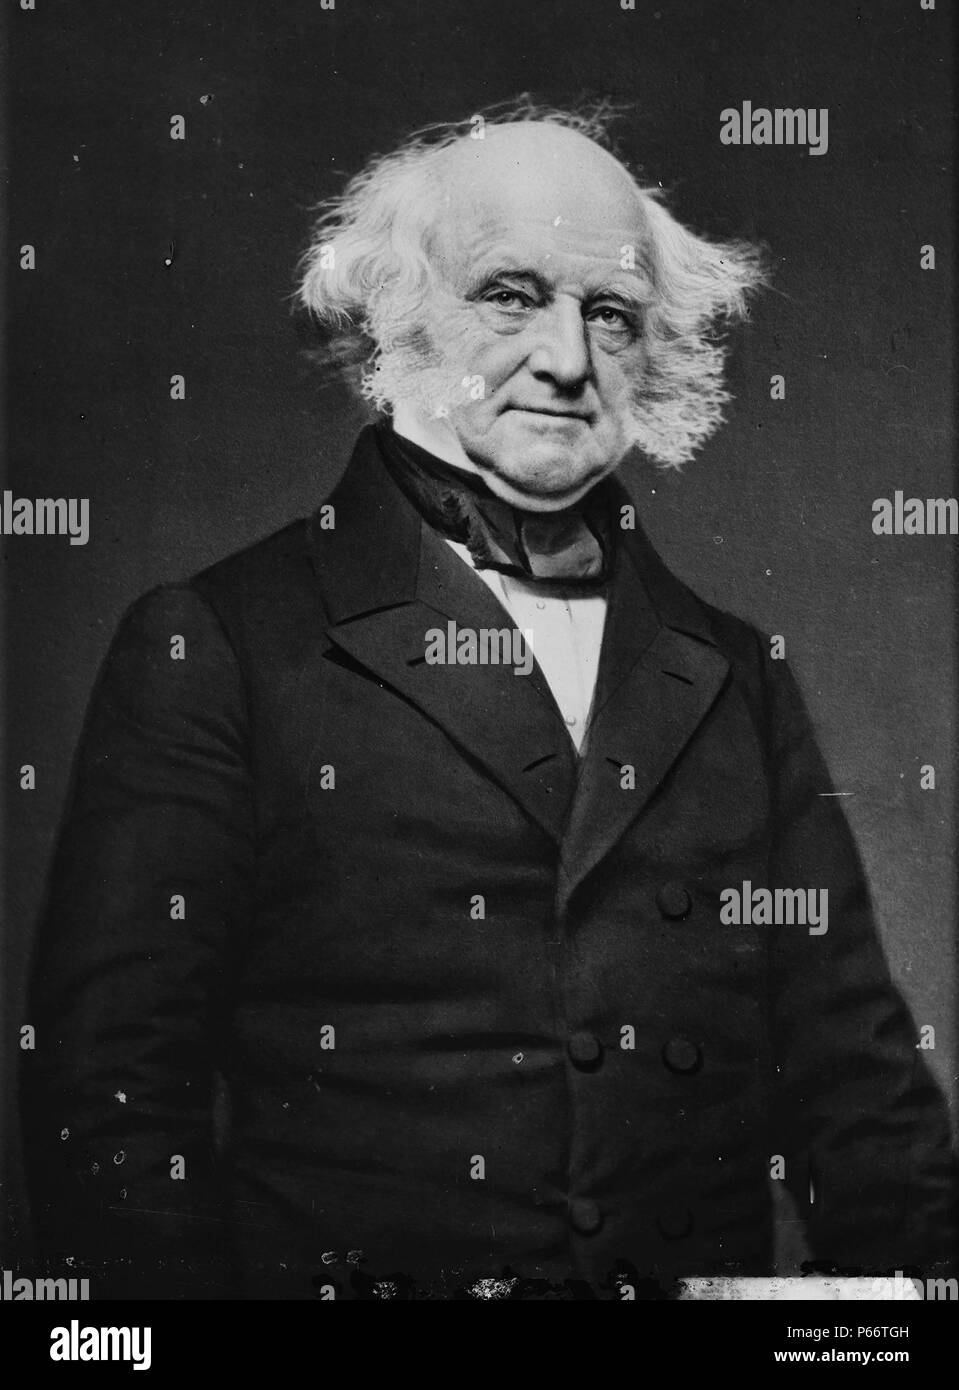 Martin Van Buren (December 5, 1782 – July 24, 1862) was the eighth President of the United States (1837–1841). Stock Photo